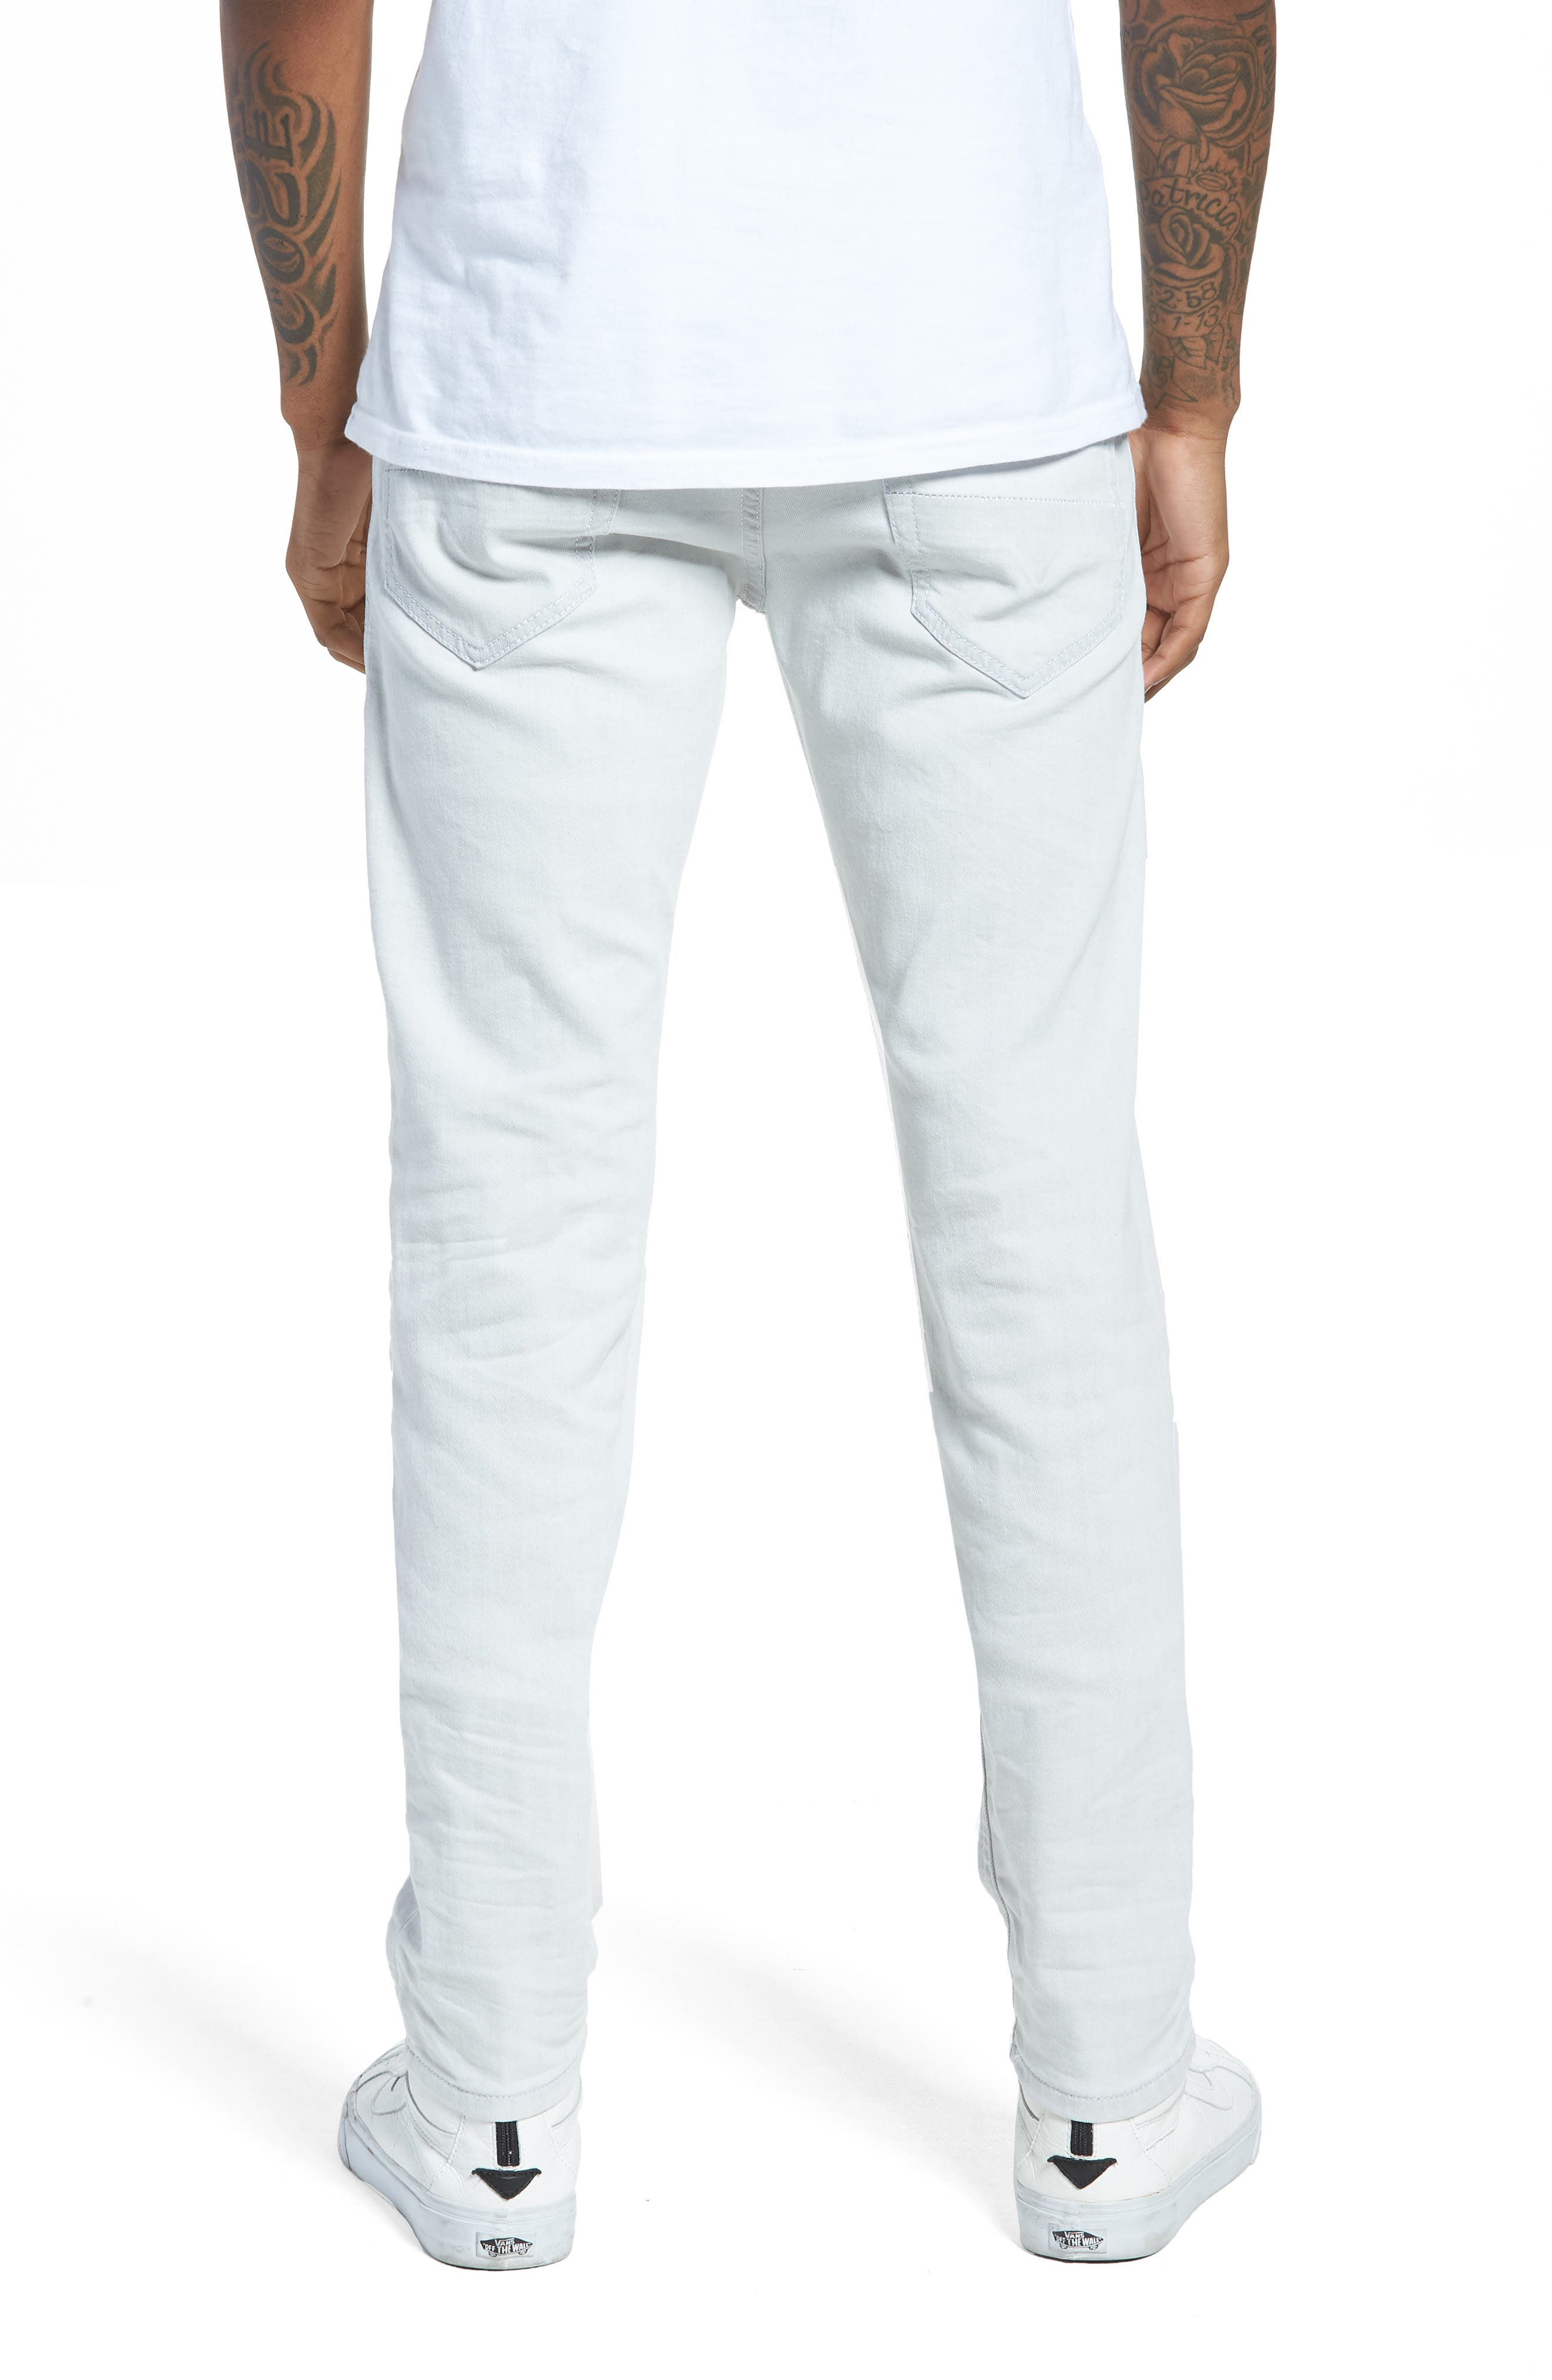 Thommer Slim Fit Jeans,                             Alternate thumbnail 2, color,                             0689F